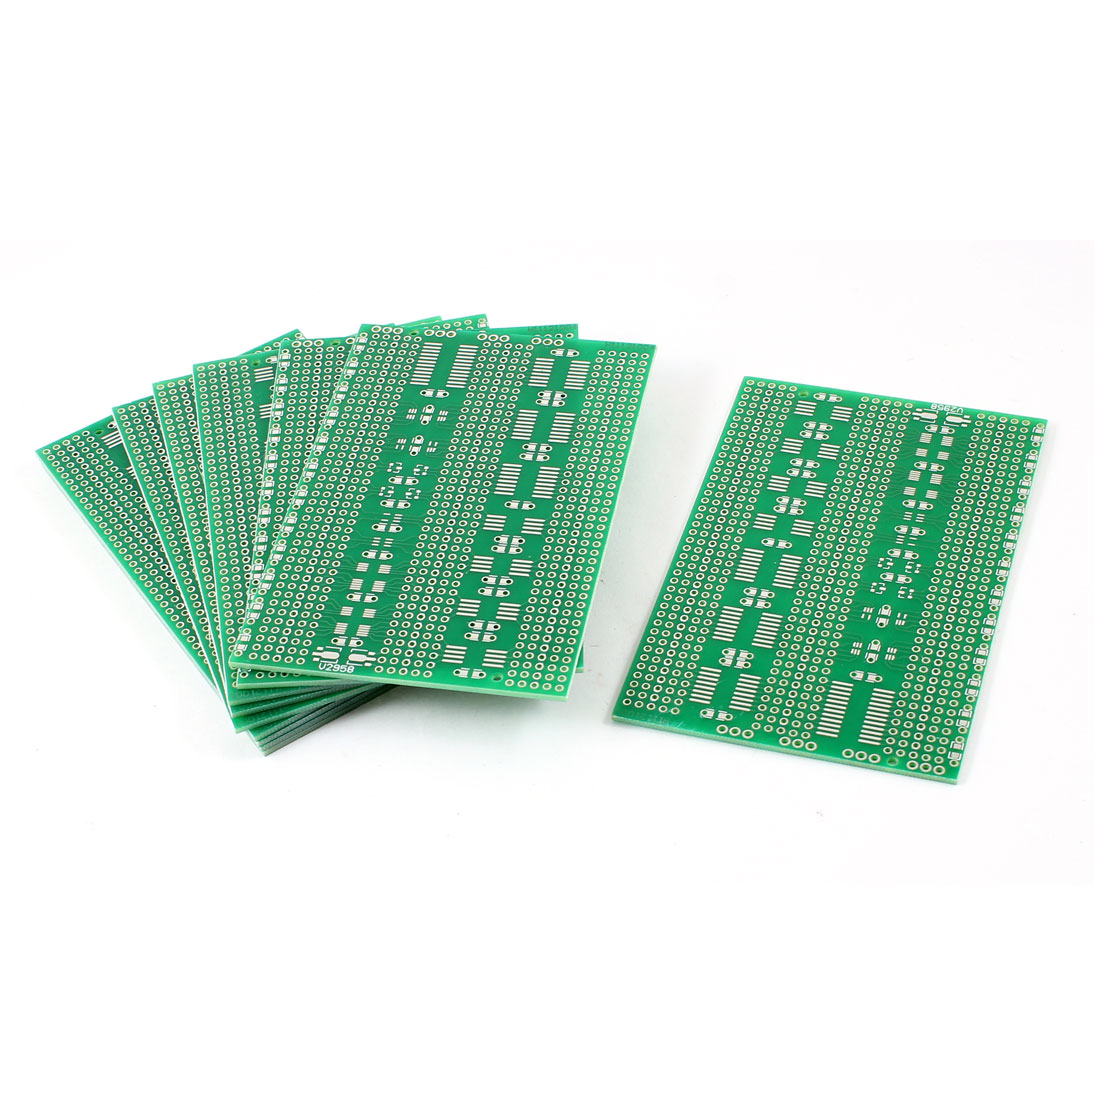 10 Pcs Universal Single Sided SMD PCB Printed Circuit Board 7cmx11cmm